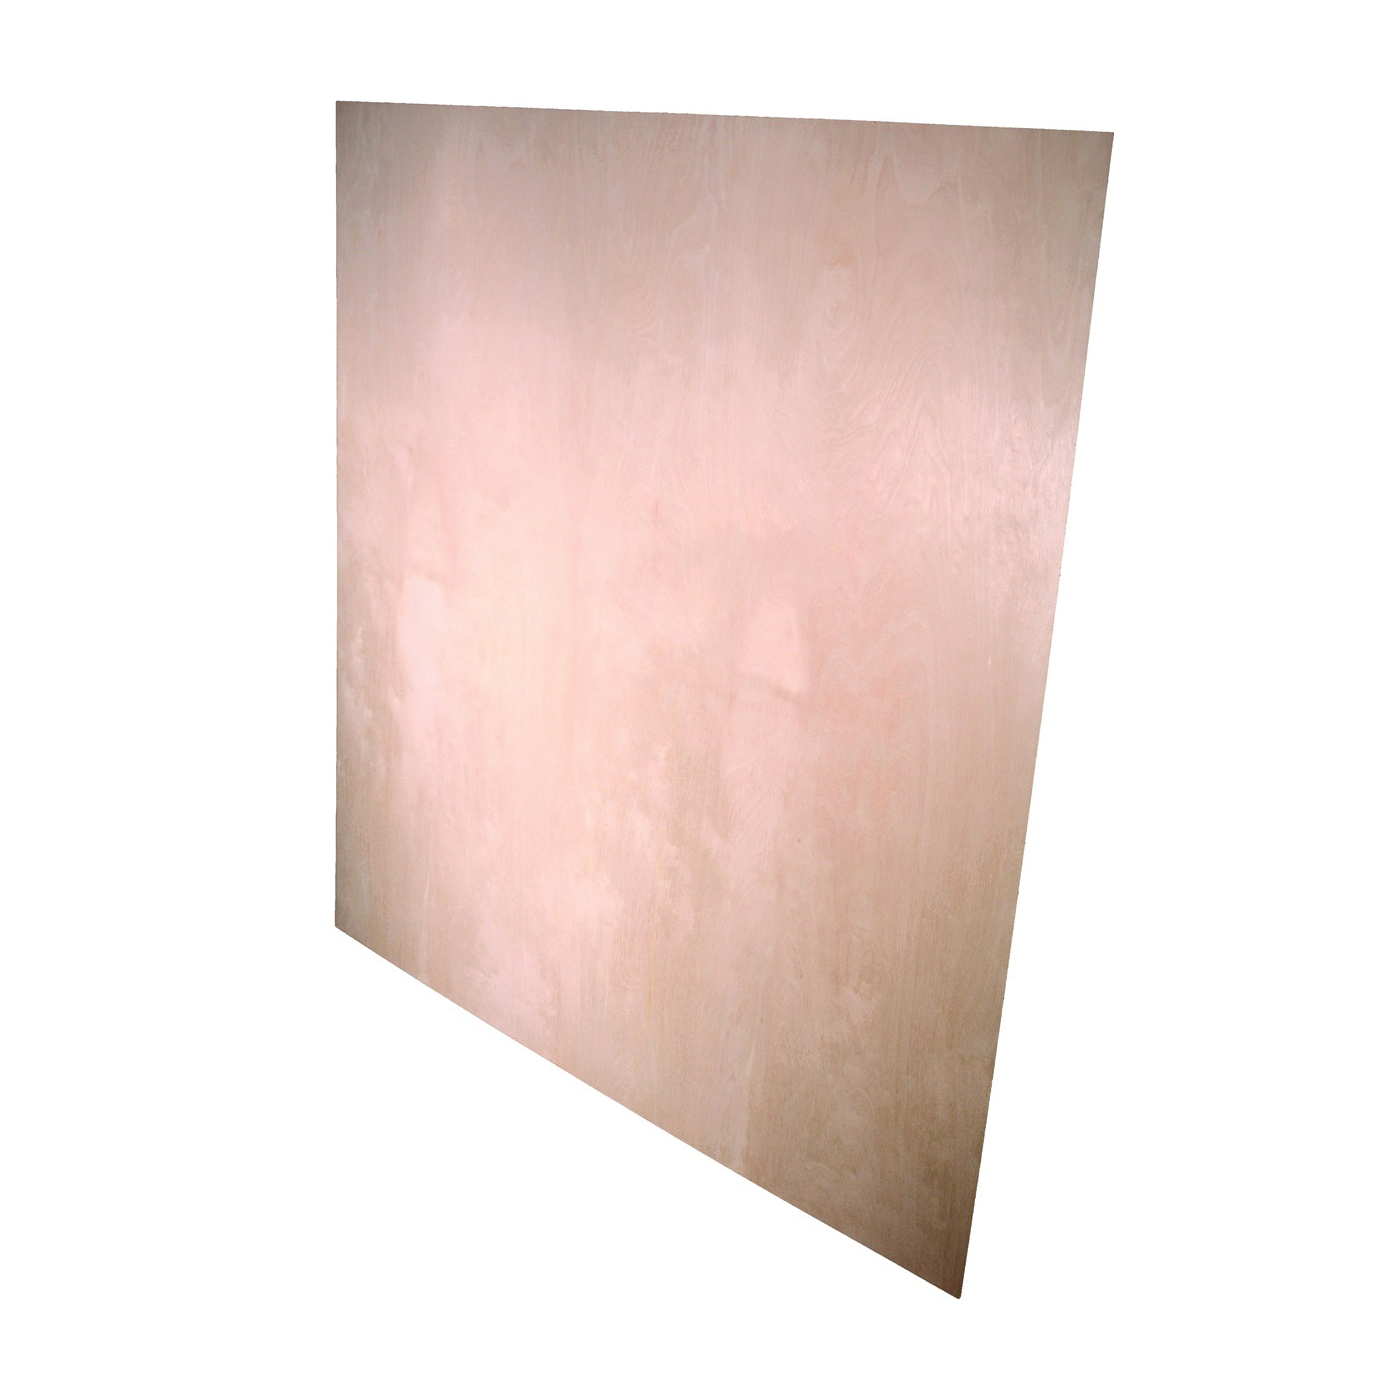 Picture of ALEXANDRIA Moulding PY004-PY048C Plywood